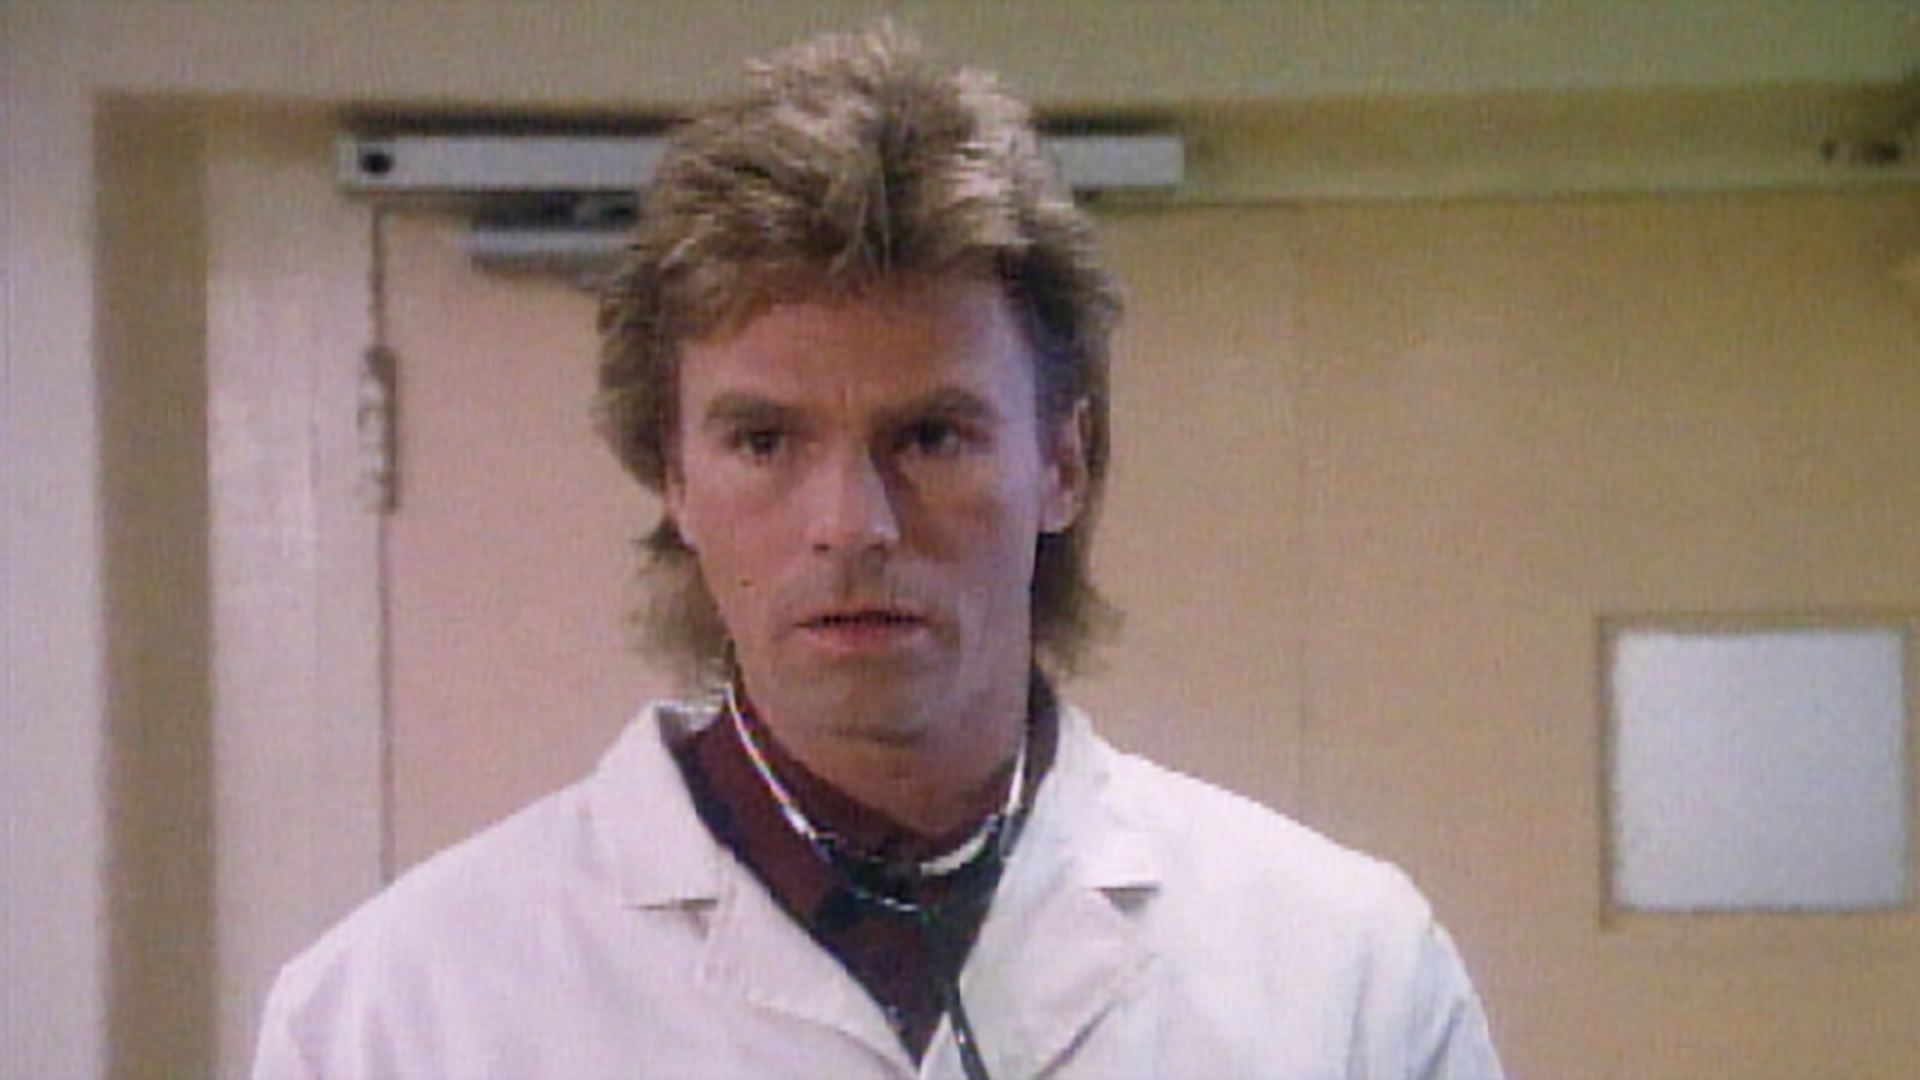 Watch MacGyver Classic Season 2 Episode 22: For Love or Money - Full show  on CBS All Access